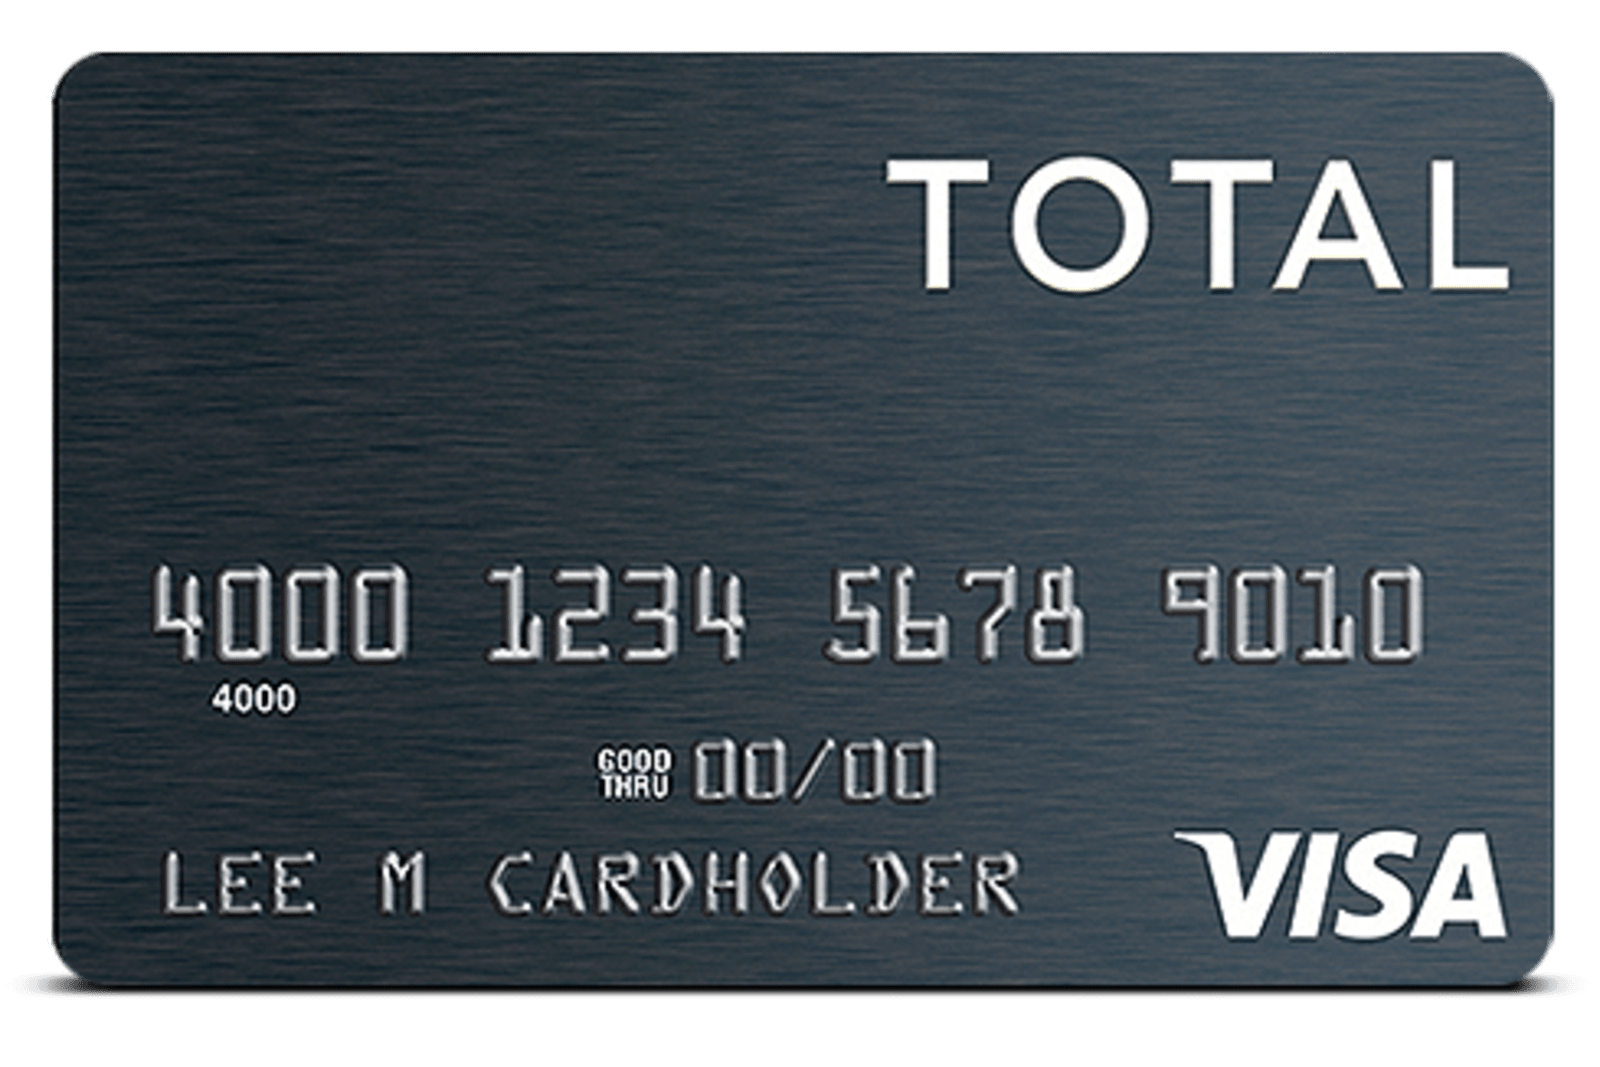 total visa unsecured credit card review consider other